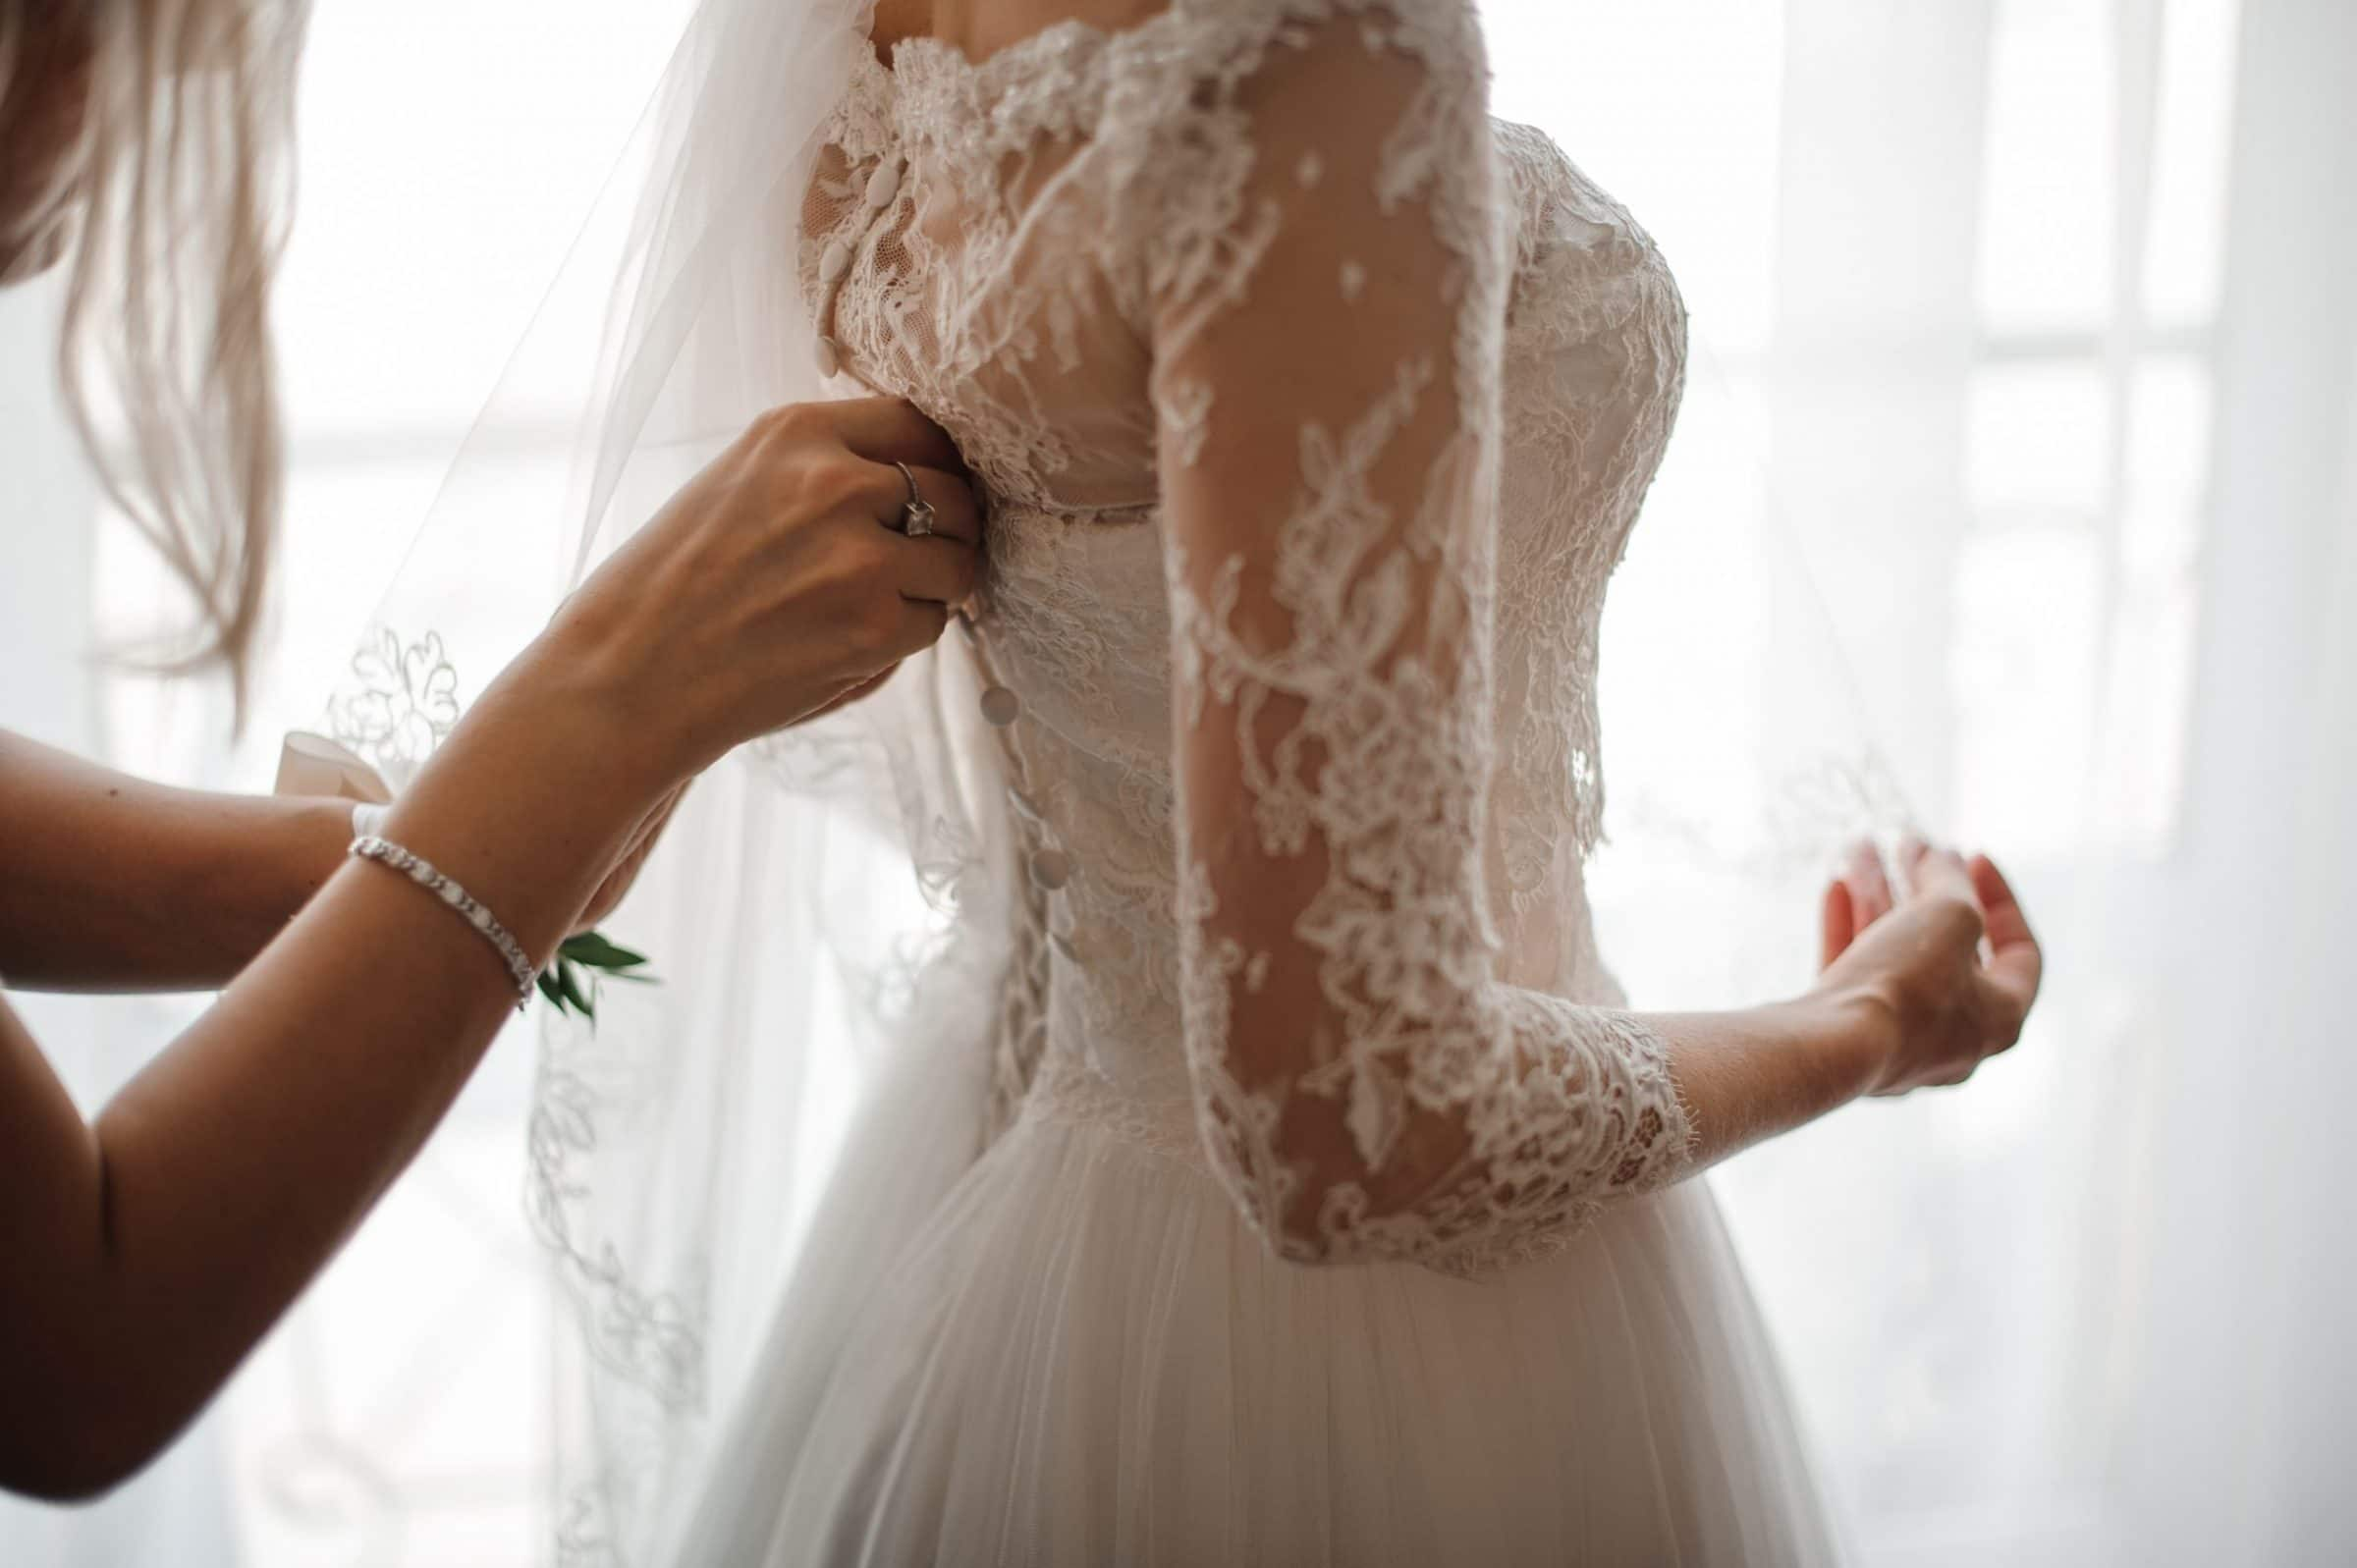 Helpful Hints to Finding Your Dream Dress